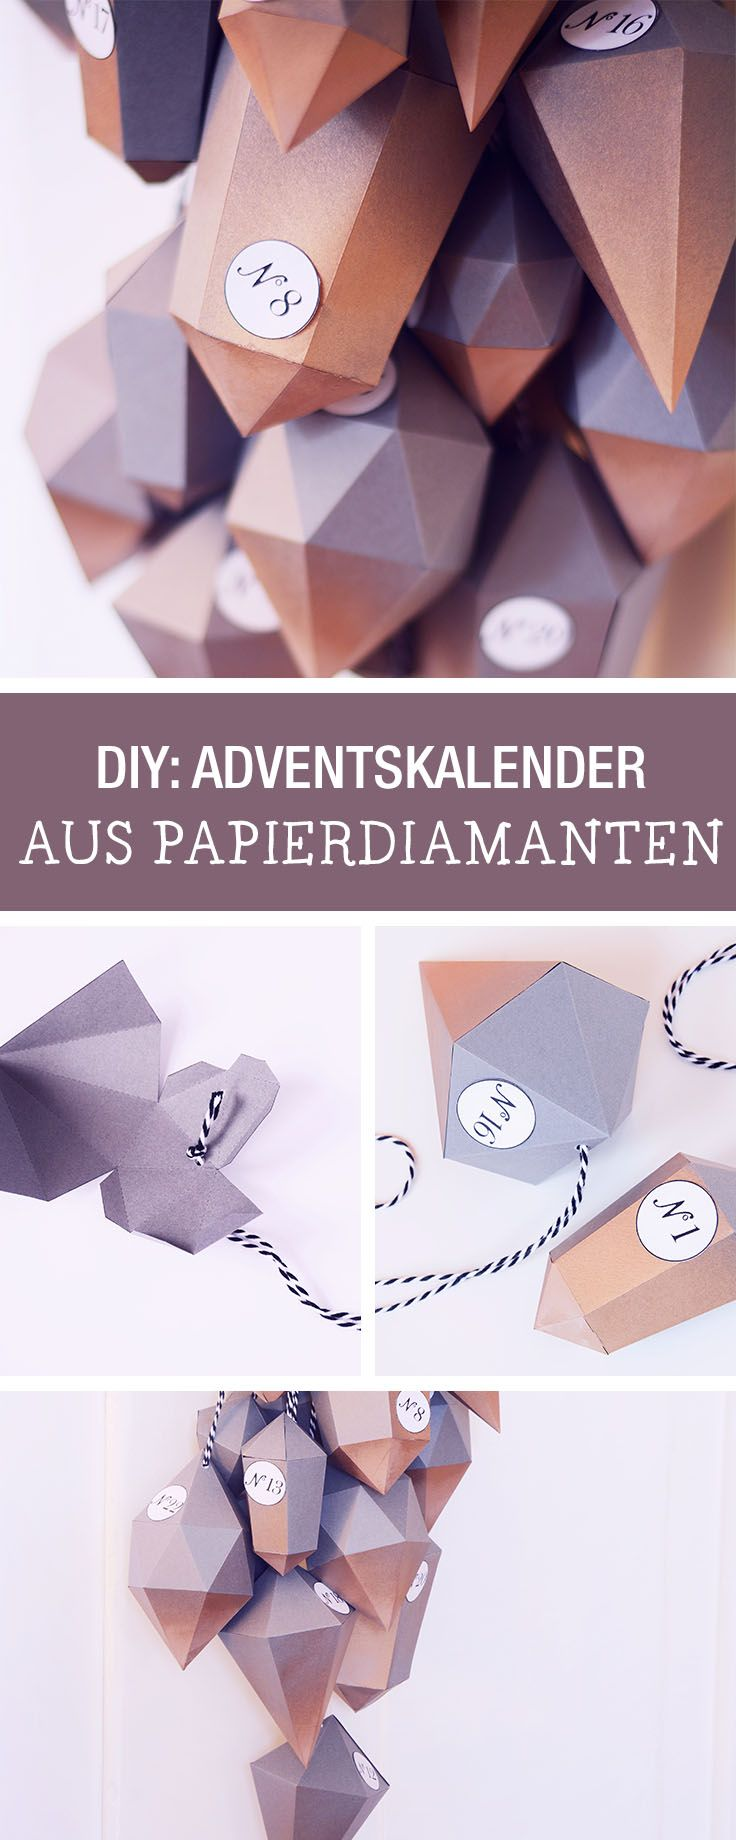 Adventskalender aus Papier-Diamanten selbermachen / paper diamonds as an advents calendar via DaWanda.com